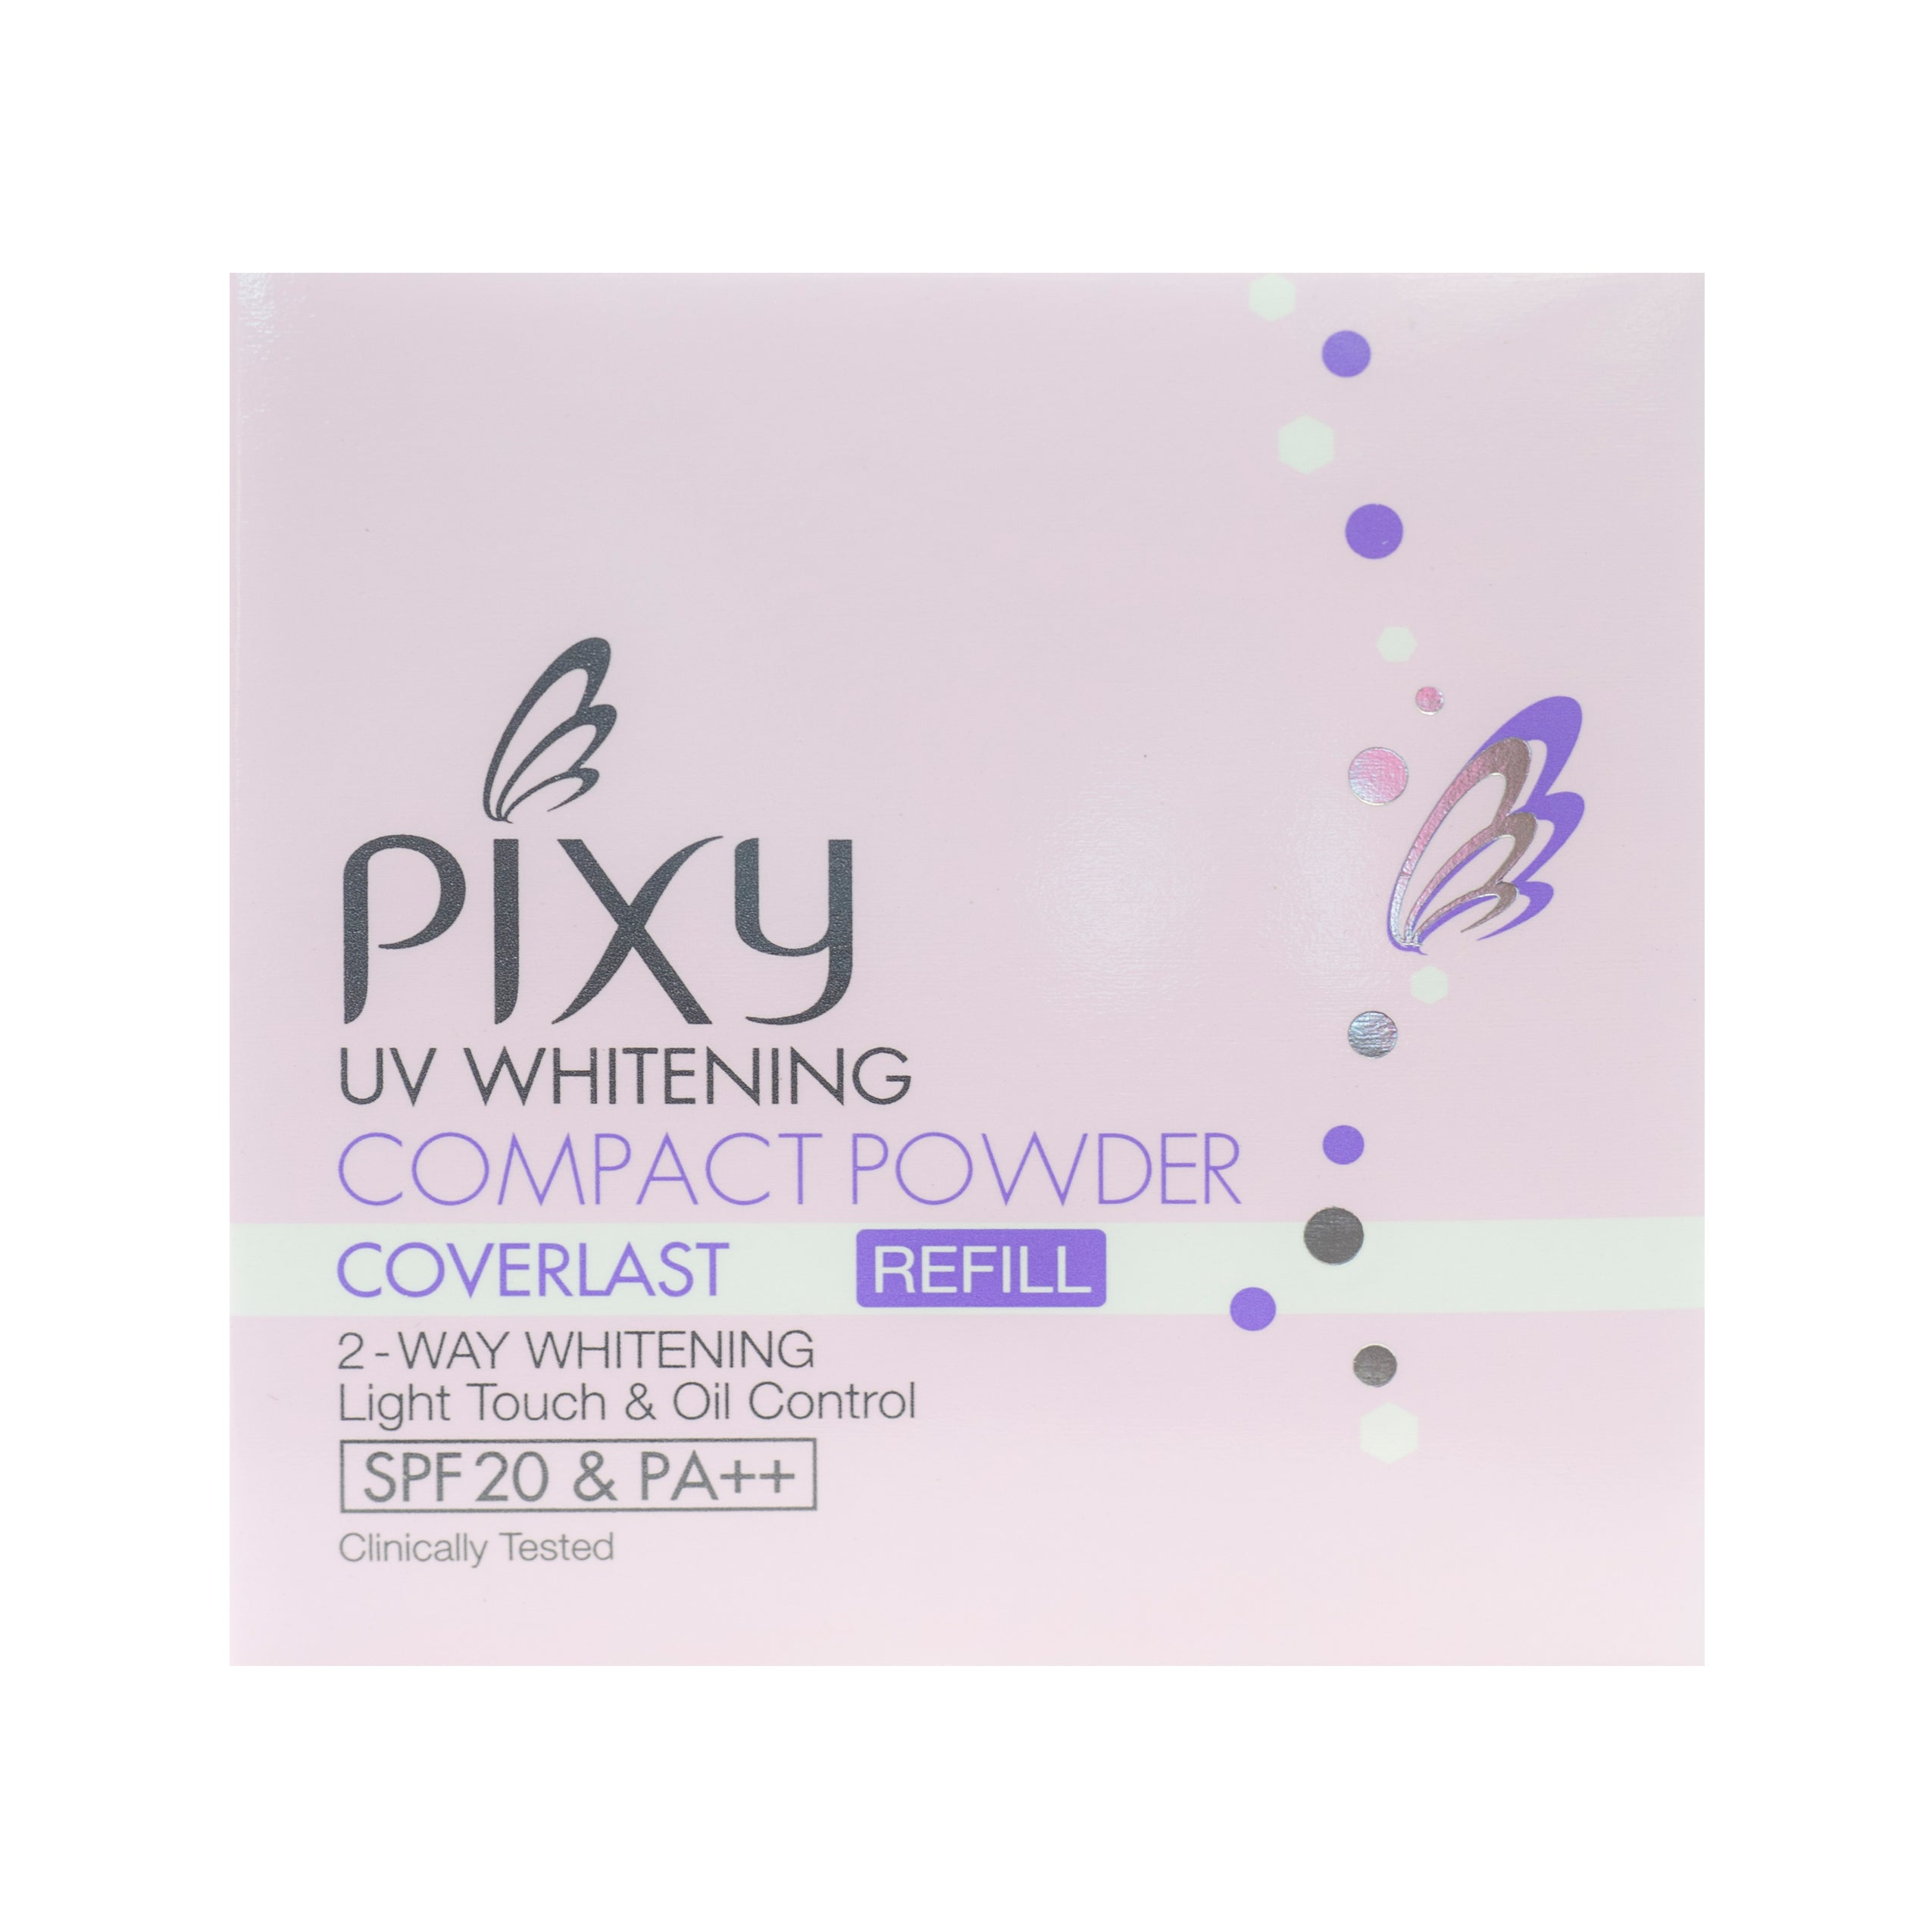 Pixy, Compact Powder Coverlast Refill, Honey, 11 g